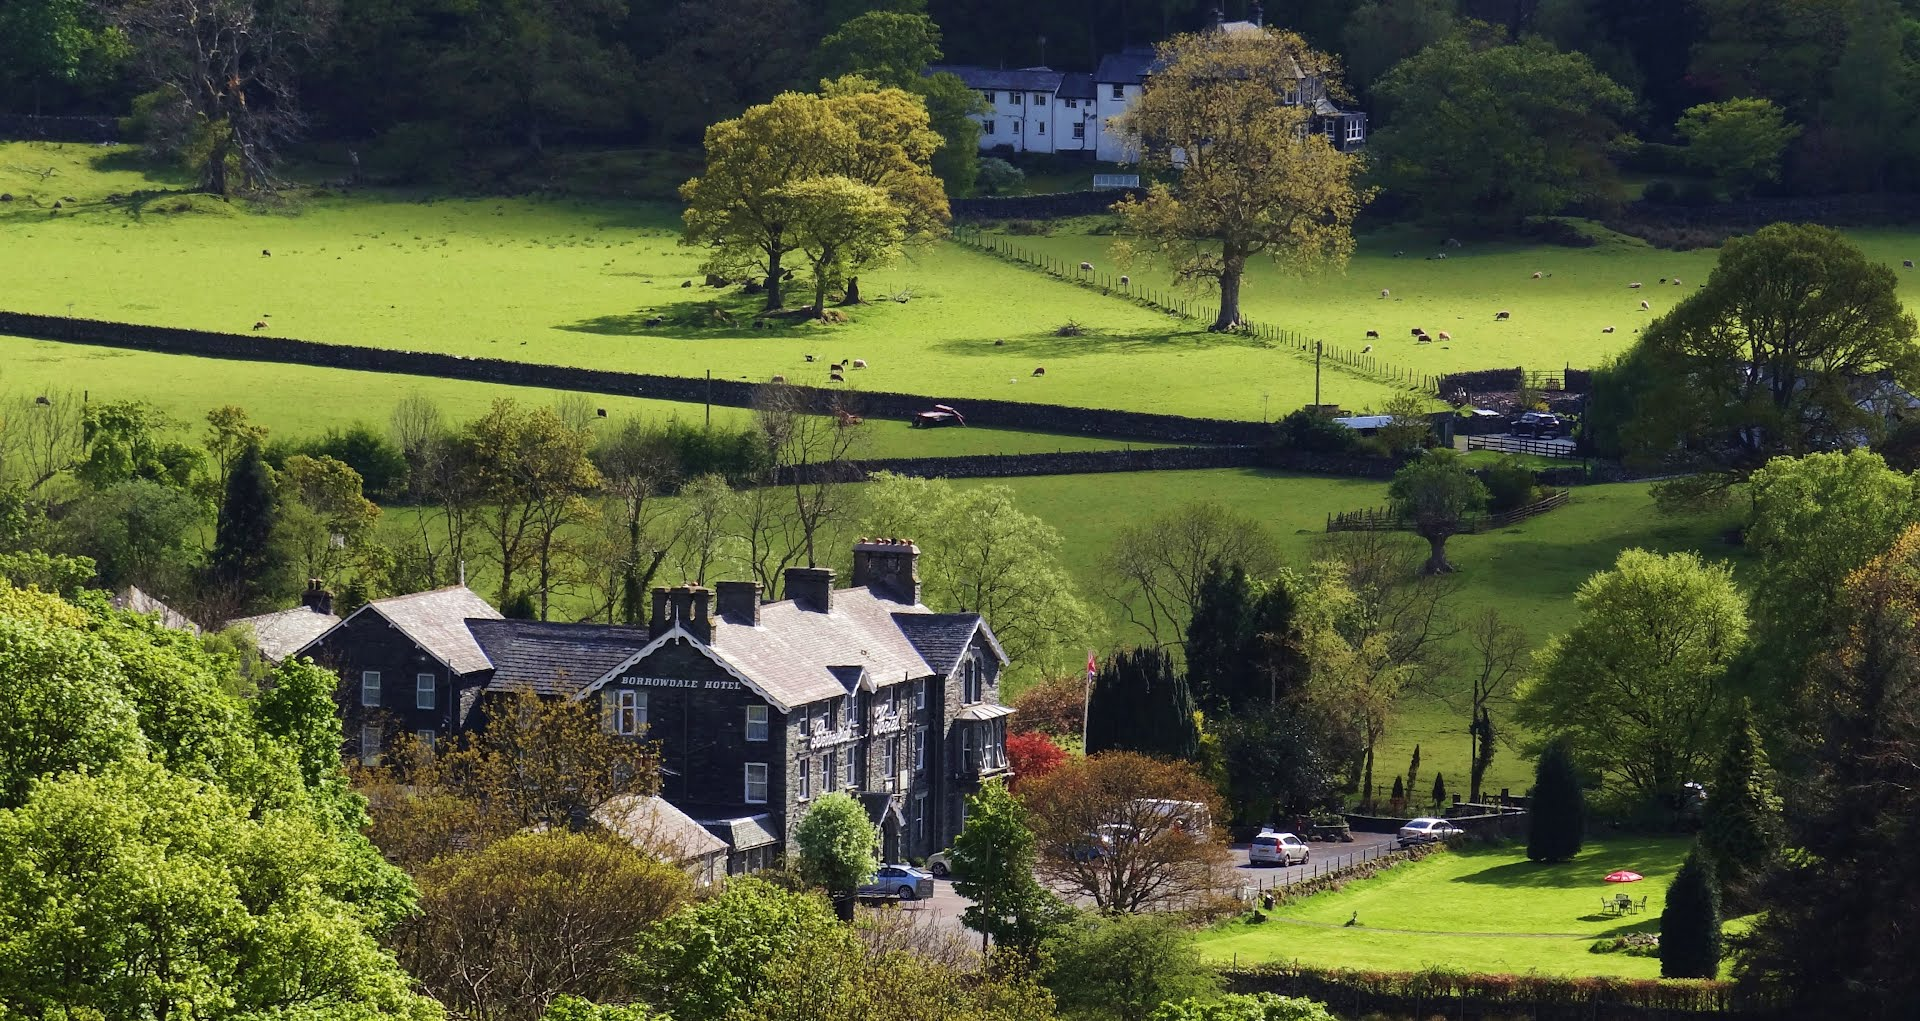 Jazzy Afternoon at the Borrowdale Hotel